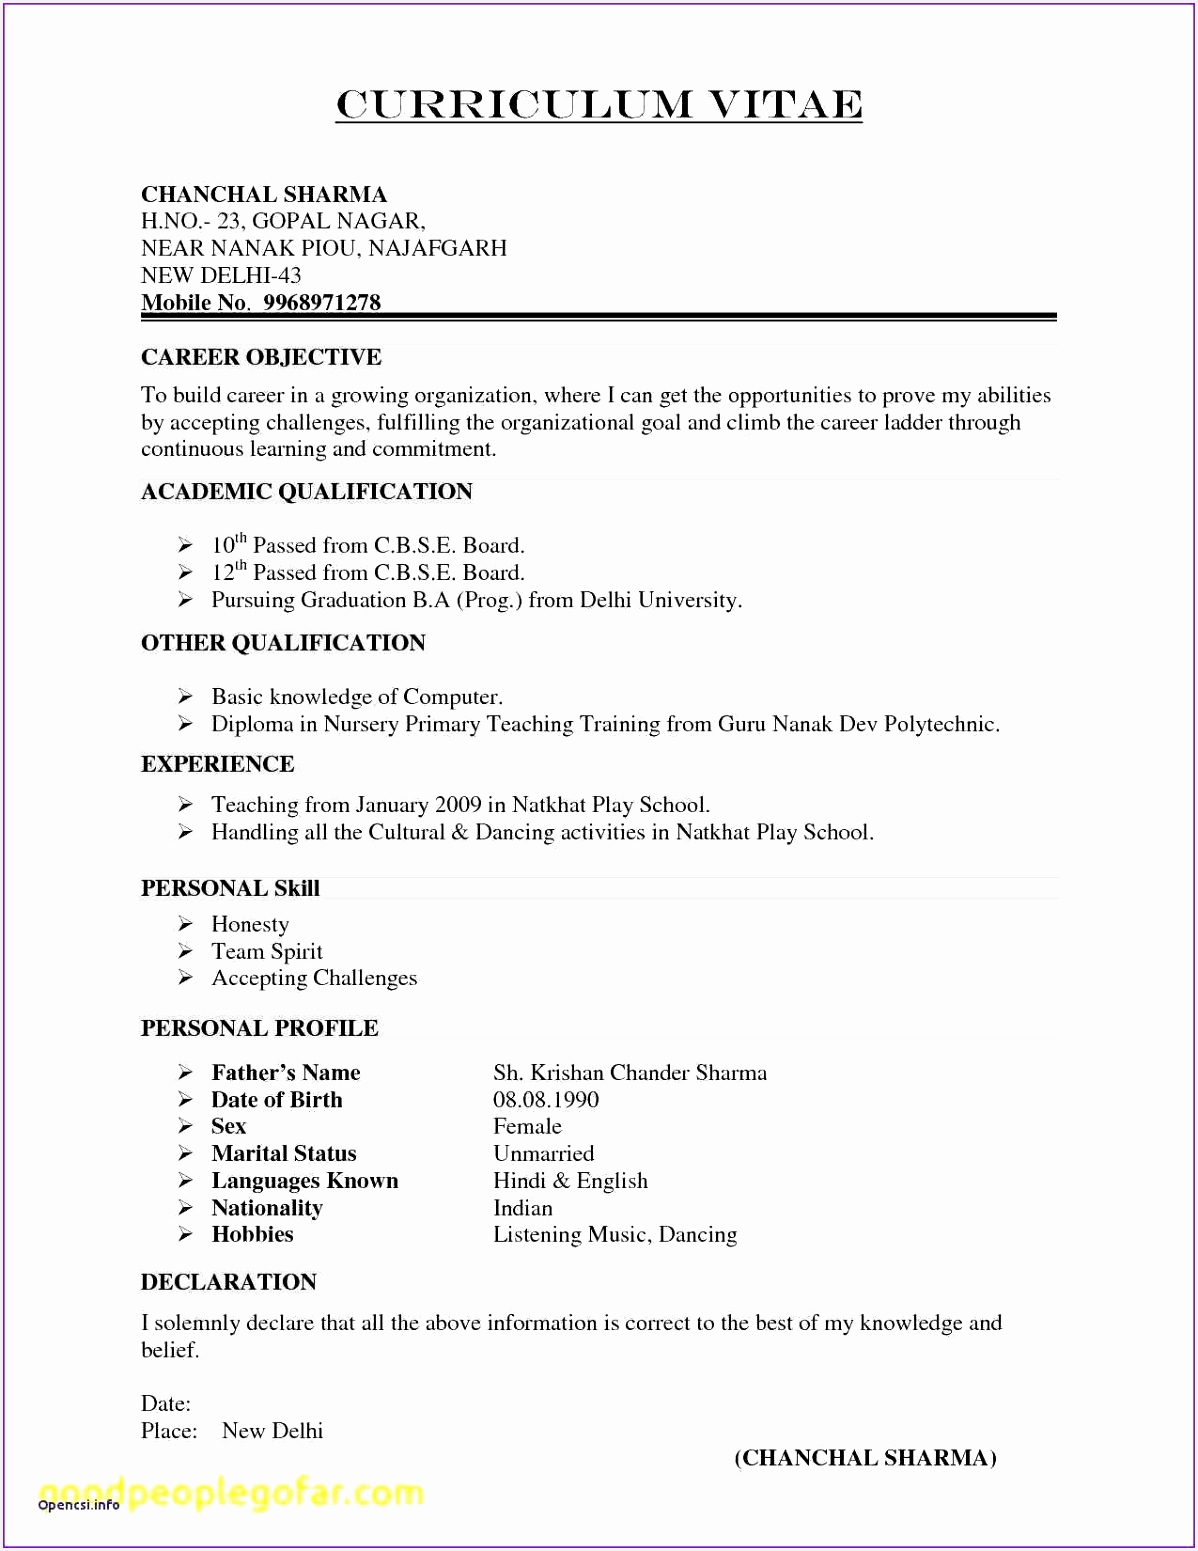 Microsoft Trainer Sample Resume Dcwig Elegant 53 Elegant Microsoft Word Free Resume Templates Awesome Resume Of 7 Microsoft Trainer Sample Resume